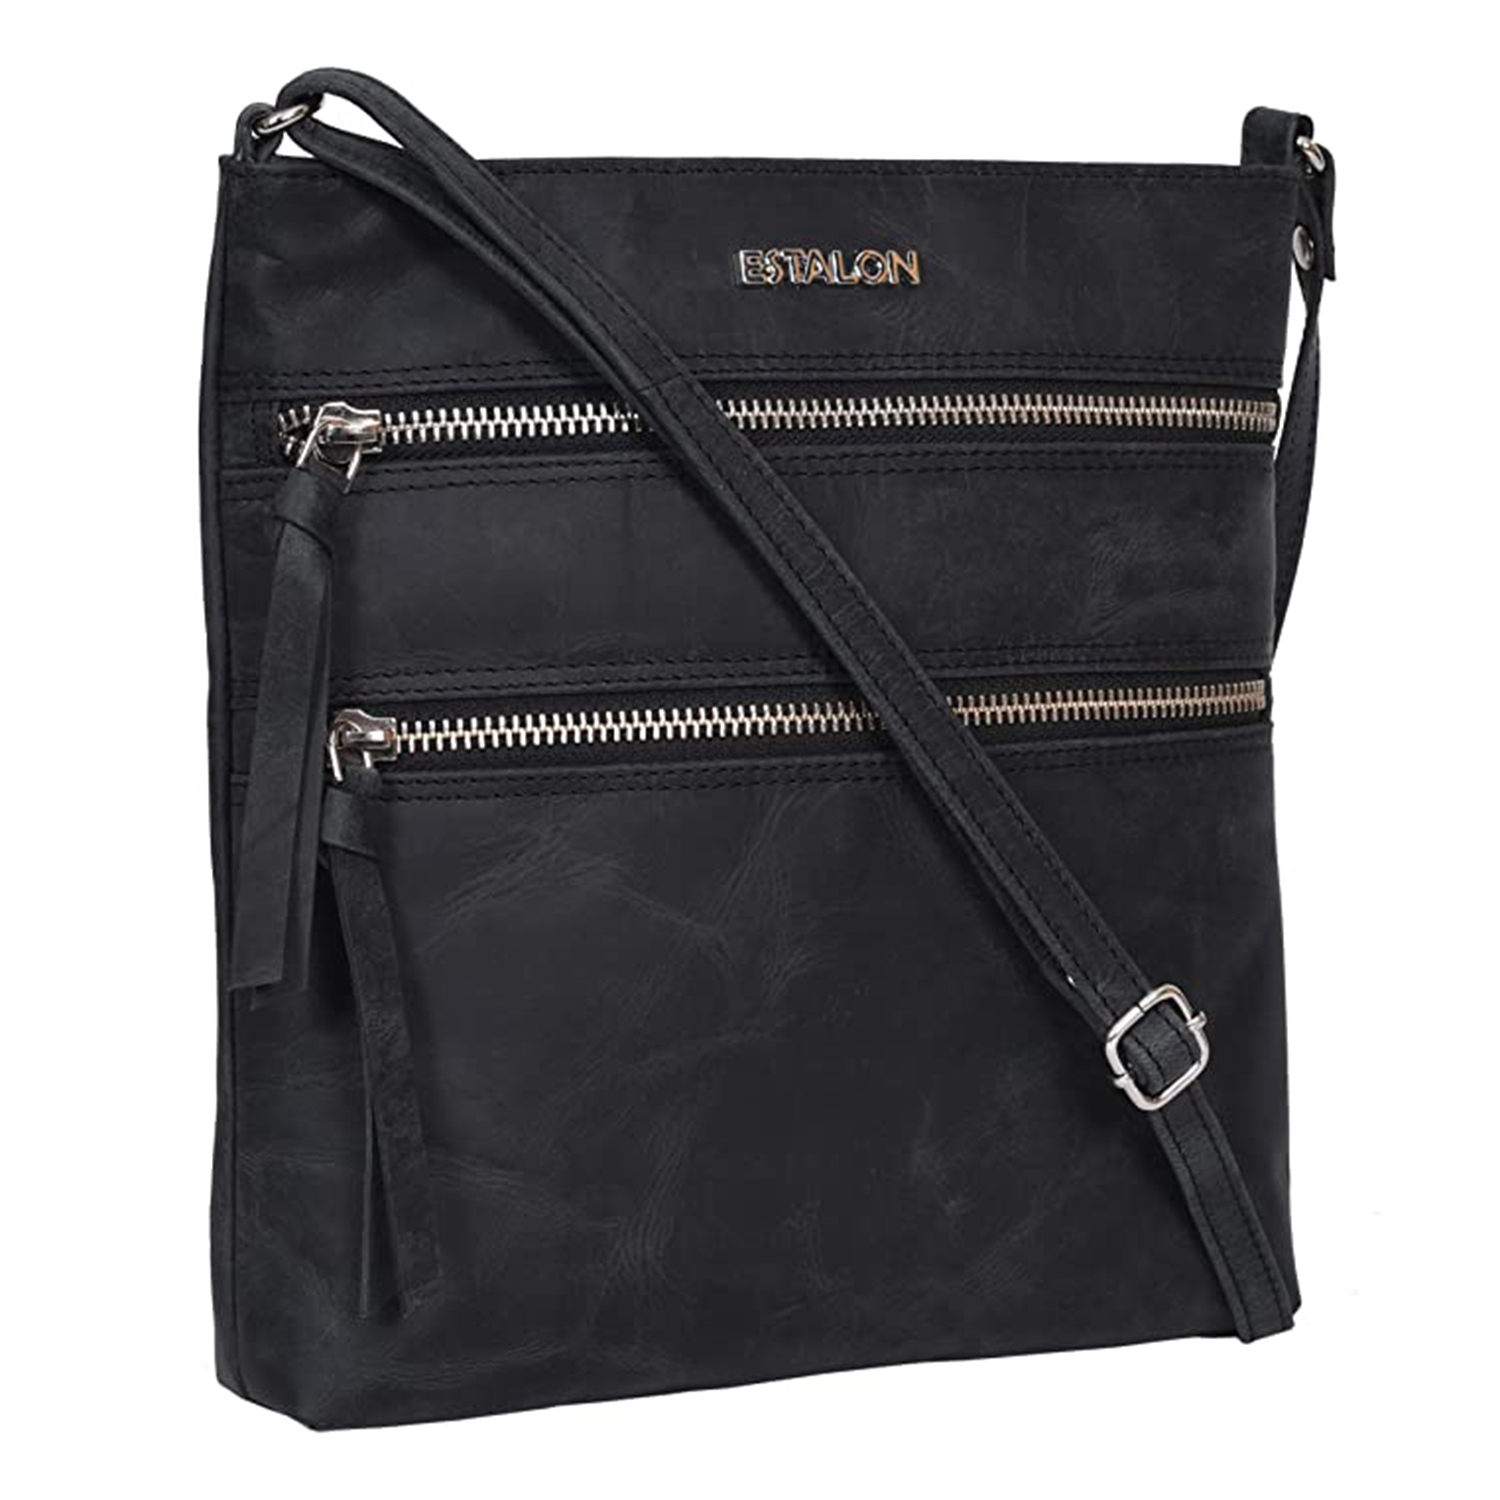 Leather Crossbody Purse for Women- Small Crossover Cross Body Bag